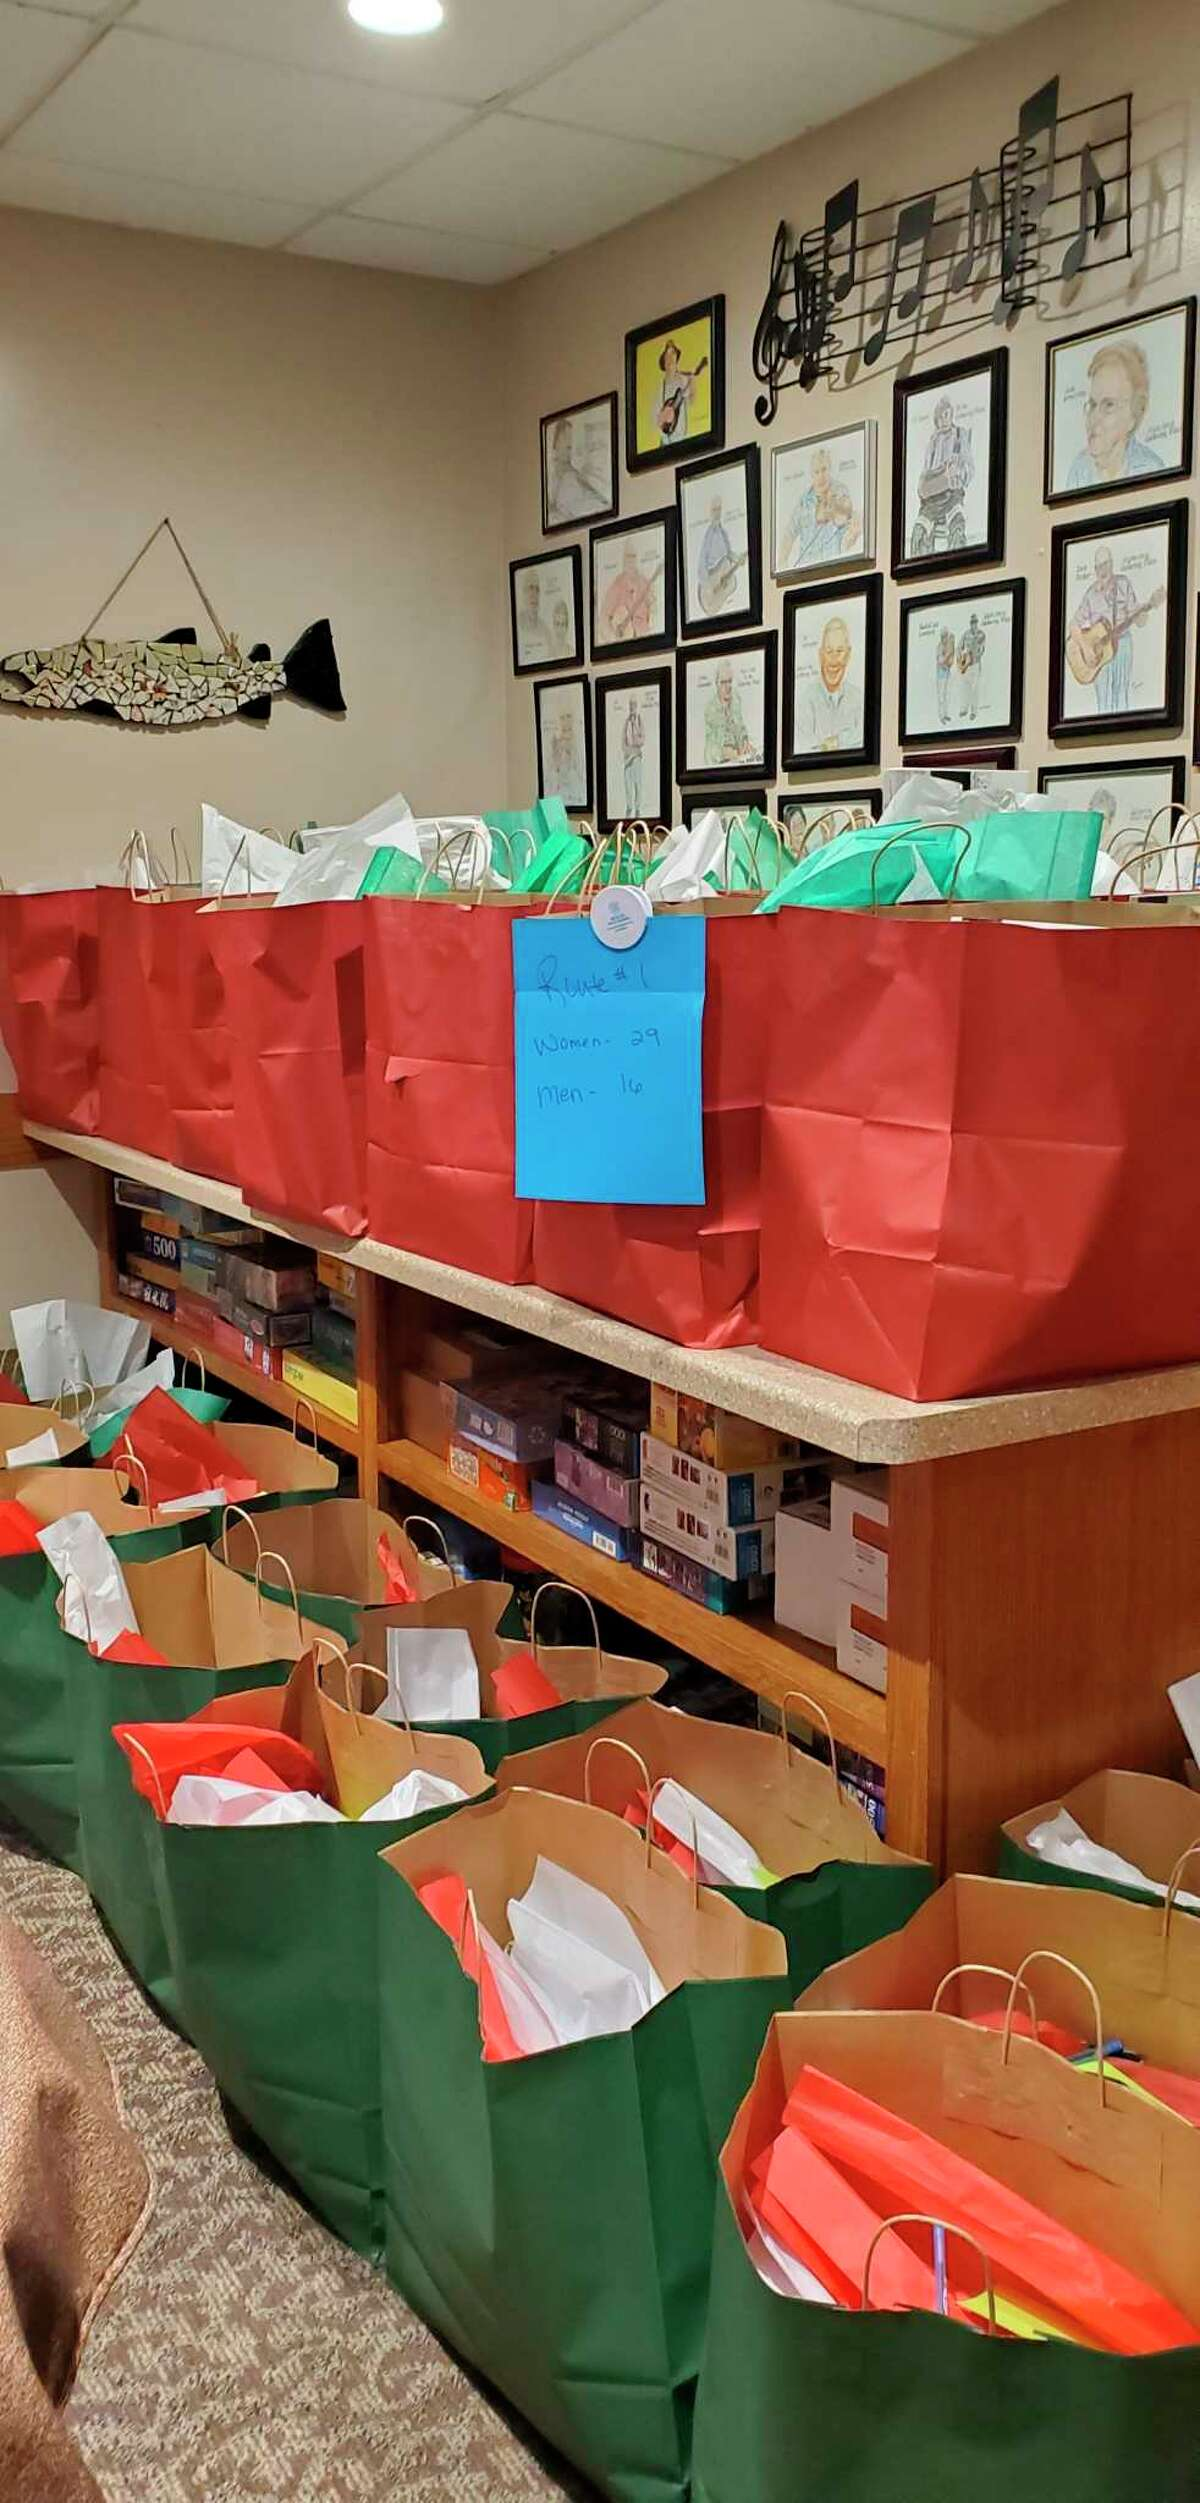 Benzie Senior Resources delivered 260 Christmas bags to home delivered meals clients in December 2020. (Courtesy Photo)